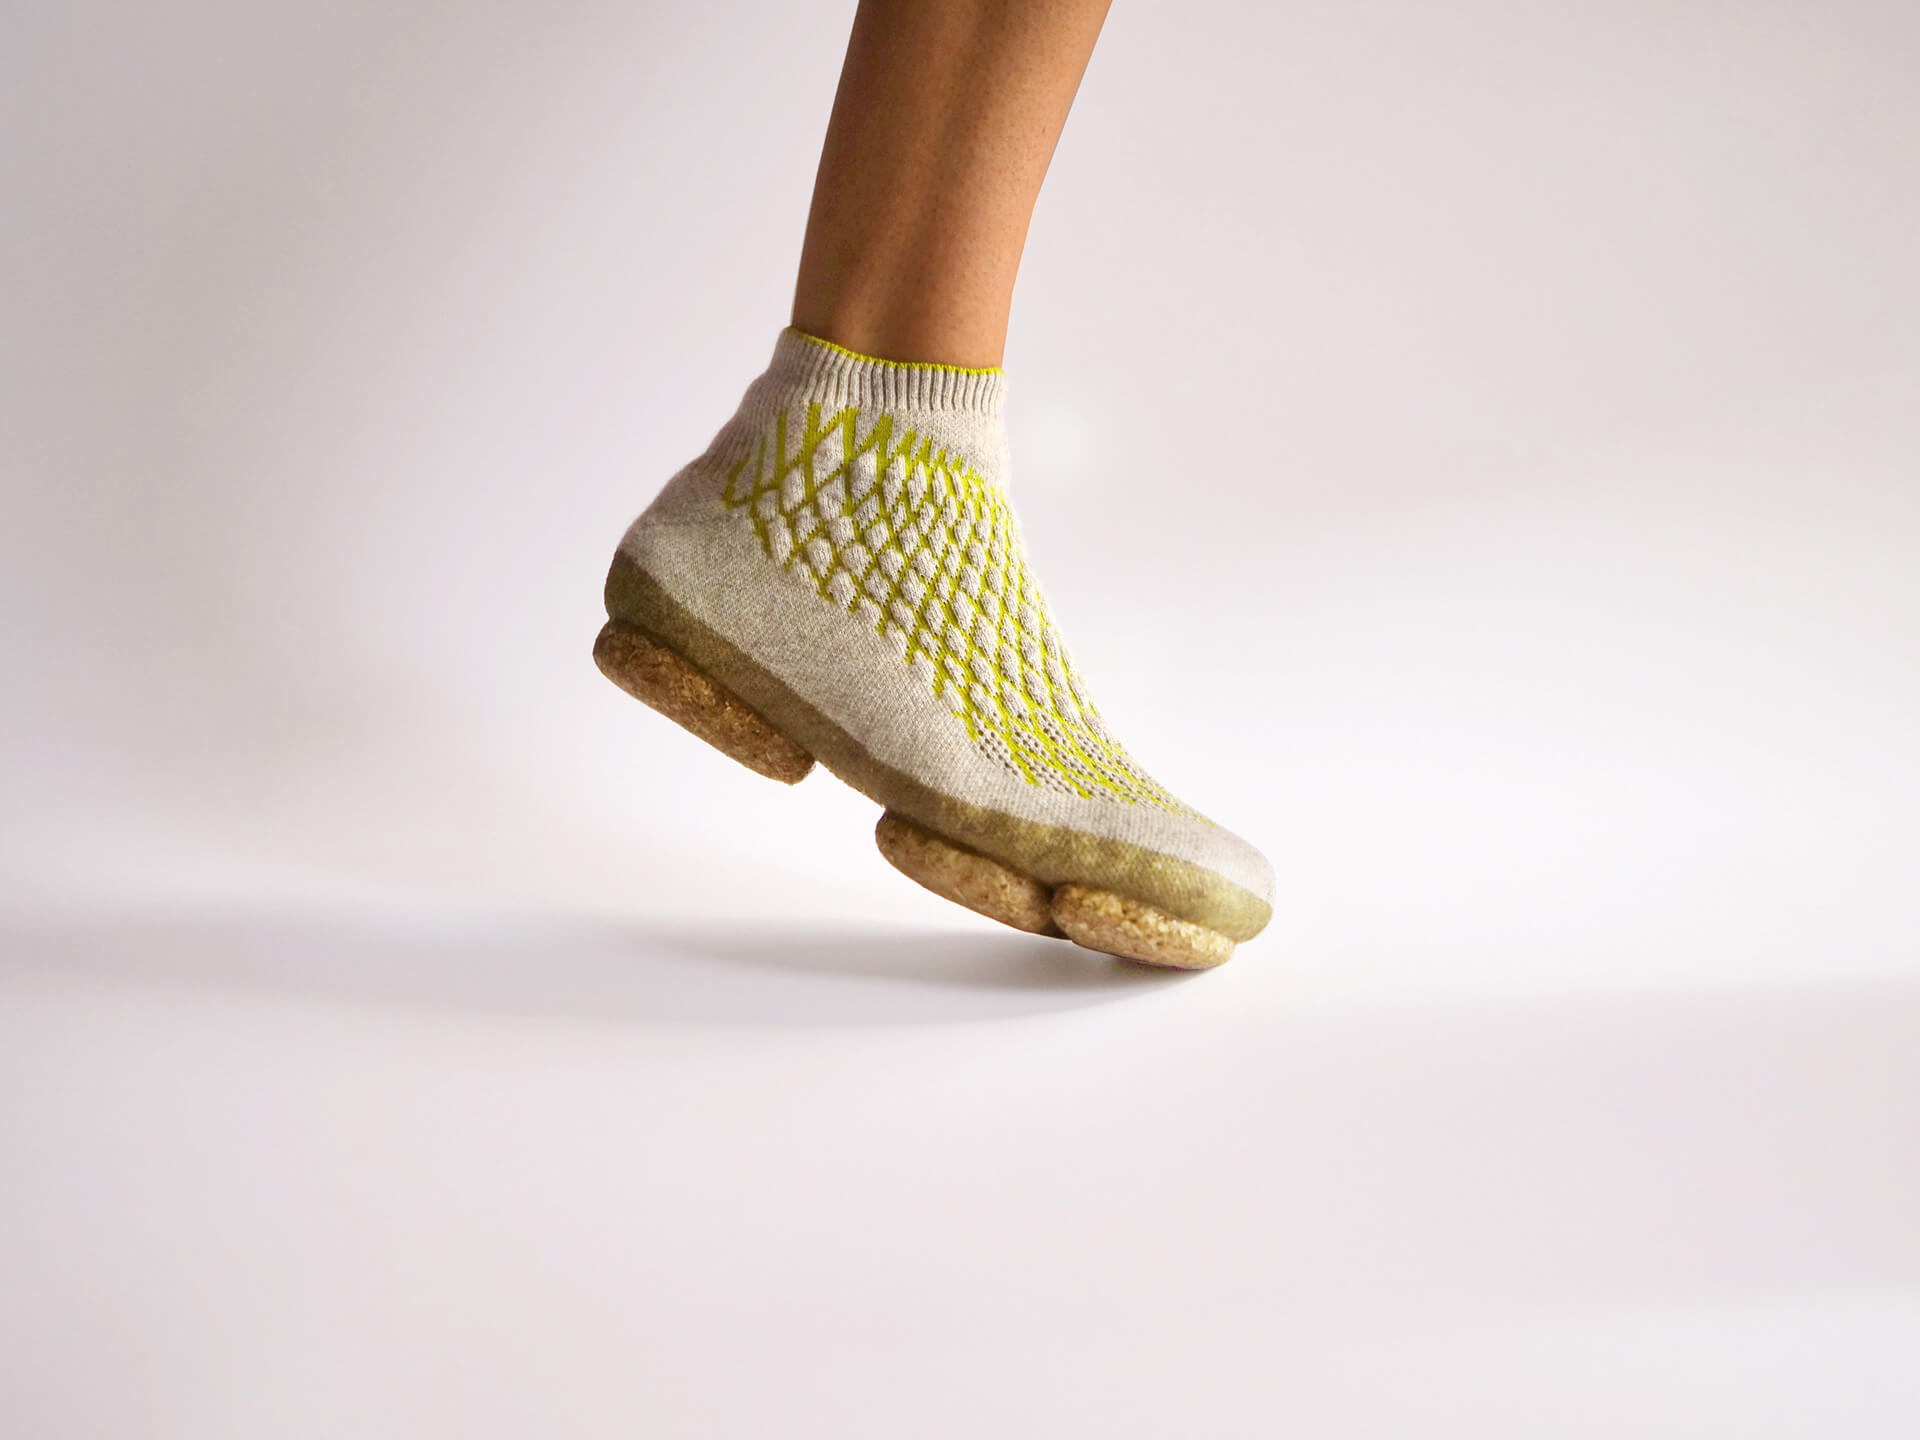 Sneature's membrane is constituted of Chiengora, a yarn derived from canine hair   Sneature bio-shoes   Emilie Burfeind   STIRworld